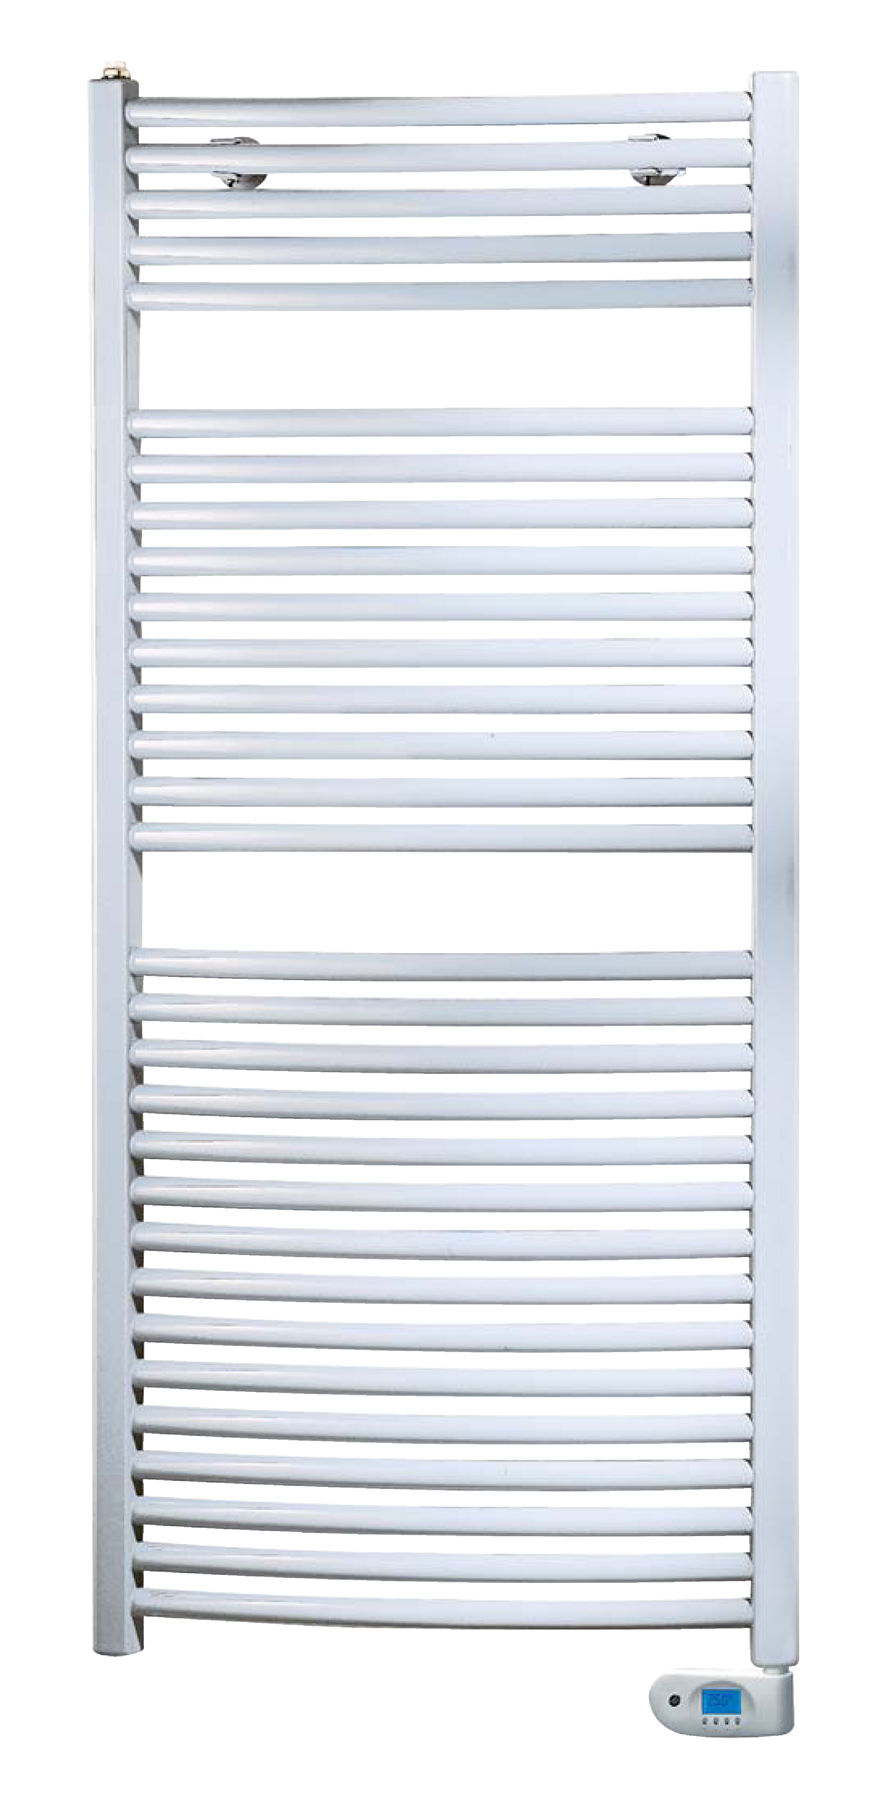 adesio dl radiators radiateur s che serviettes ola 2. Black Bedroom Furniture Sets. Home Design Ideas